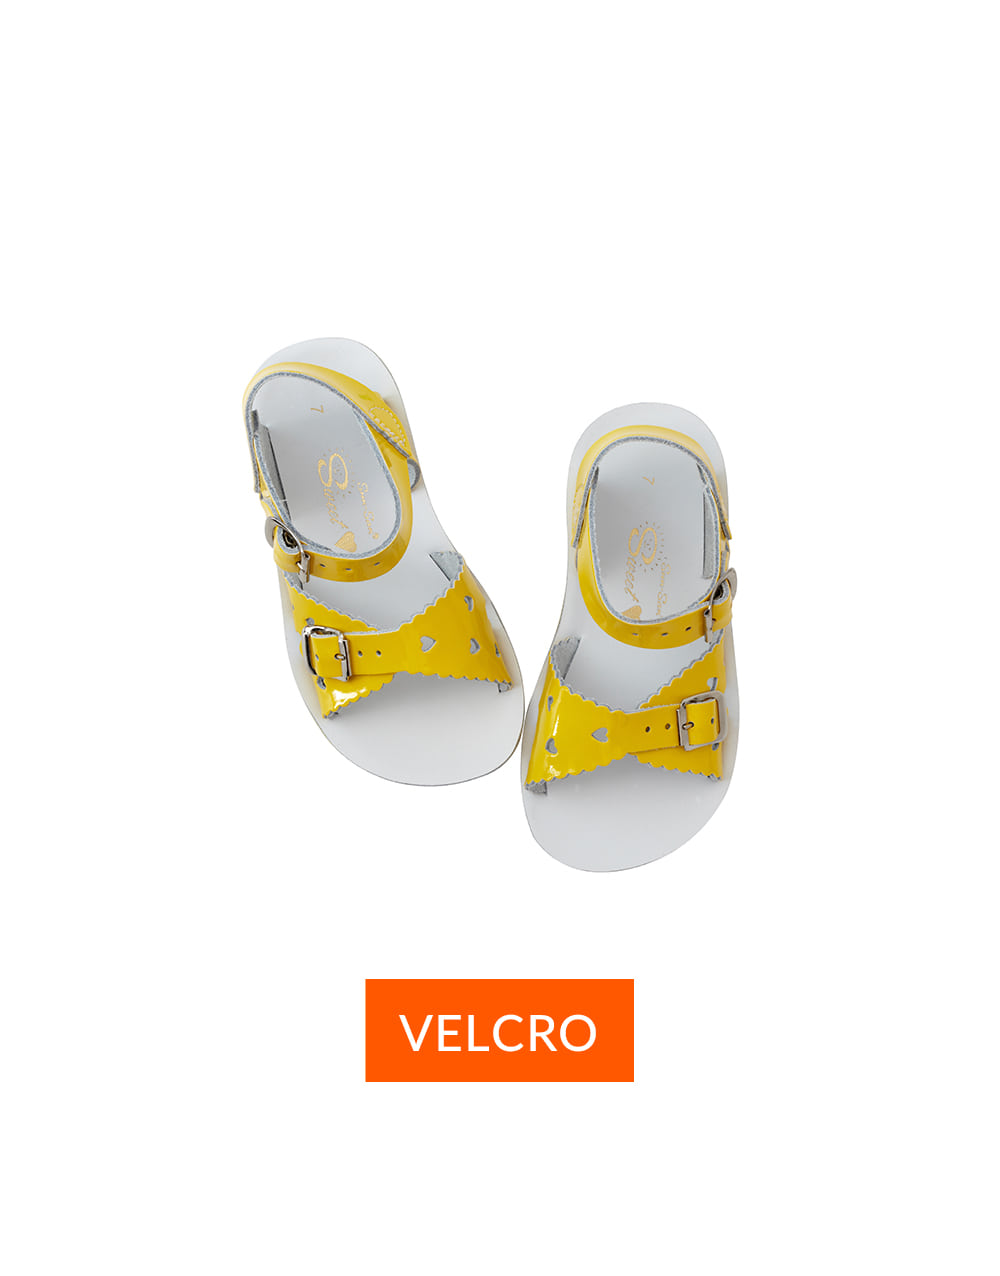 SALT-WATER SANDAL  CHILD VELCRO  SWEETHEART PREMIUM  Shiny Yellow